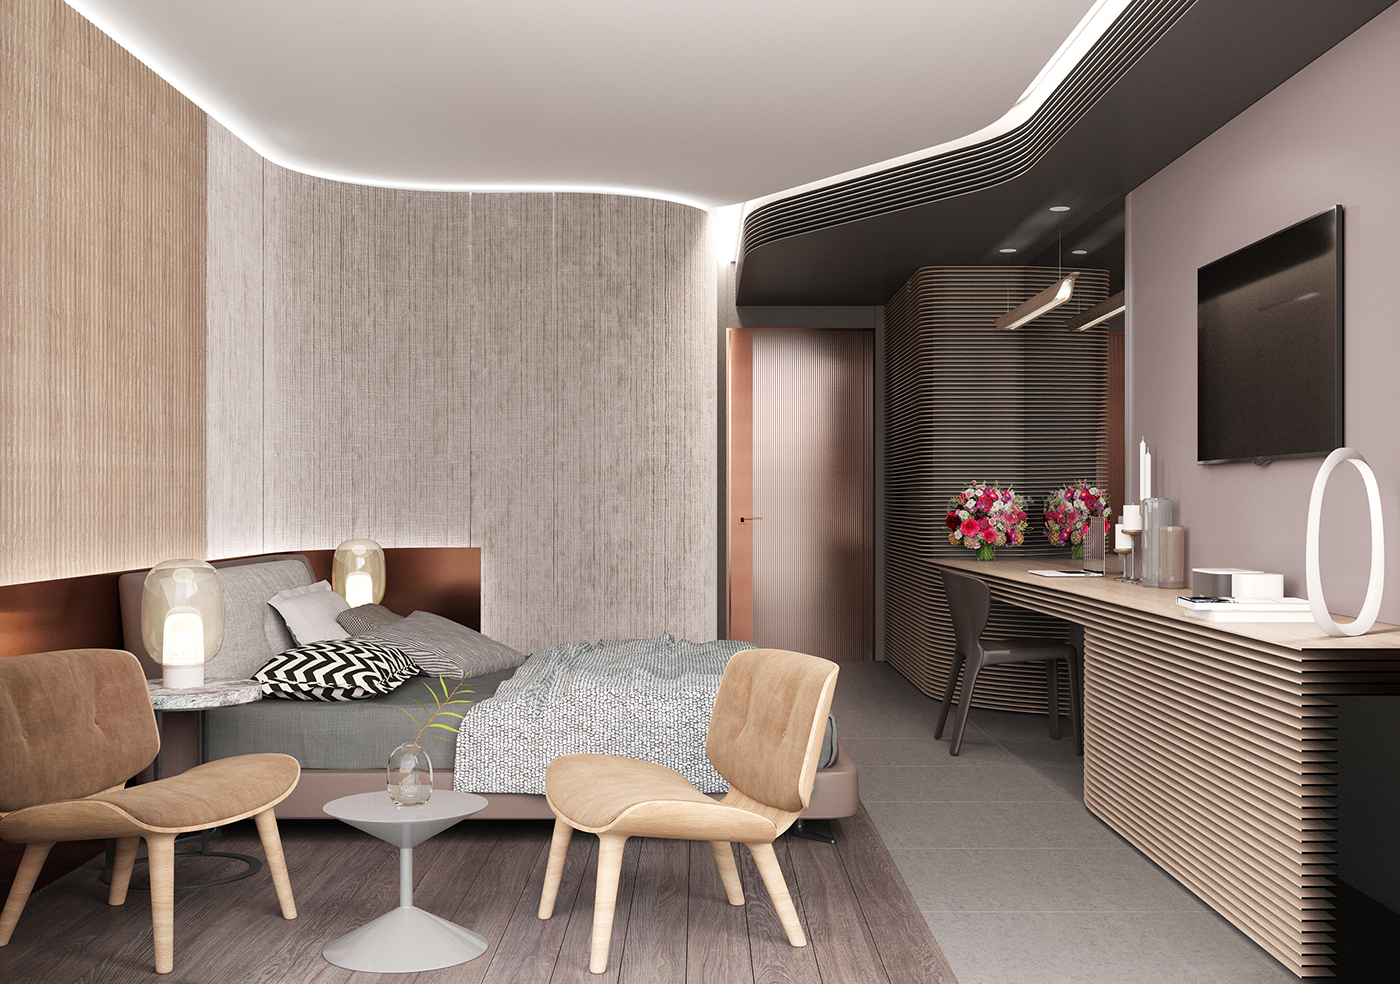 hotel room corona render on behance. Black Bedroom Furniture Sets. Home Design Ideas